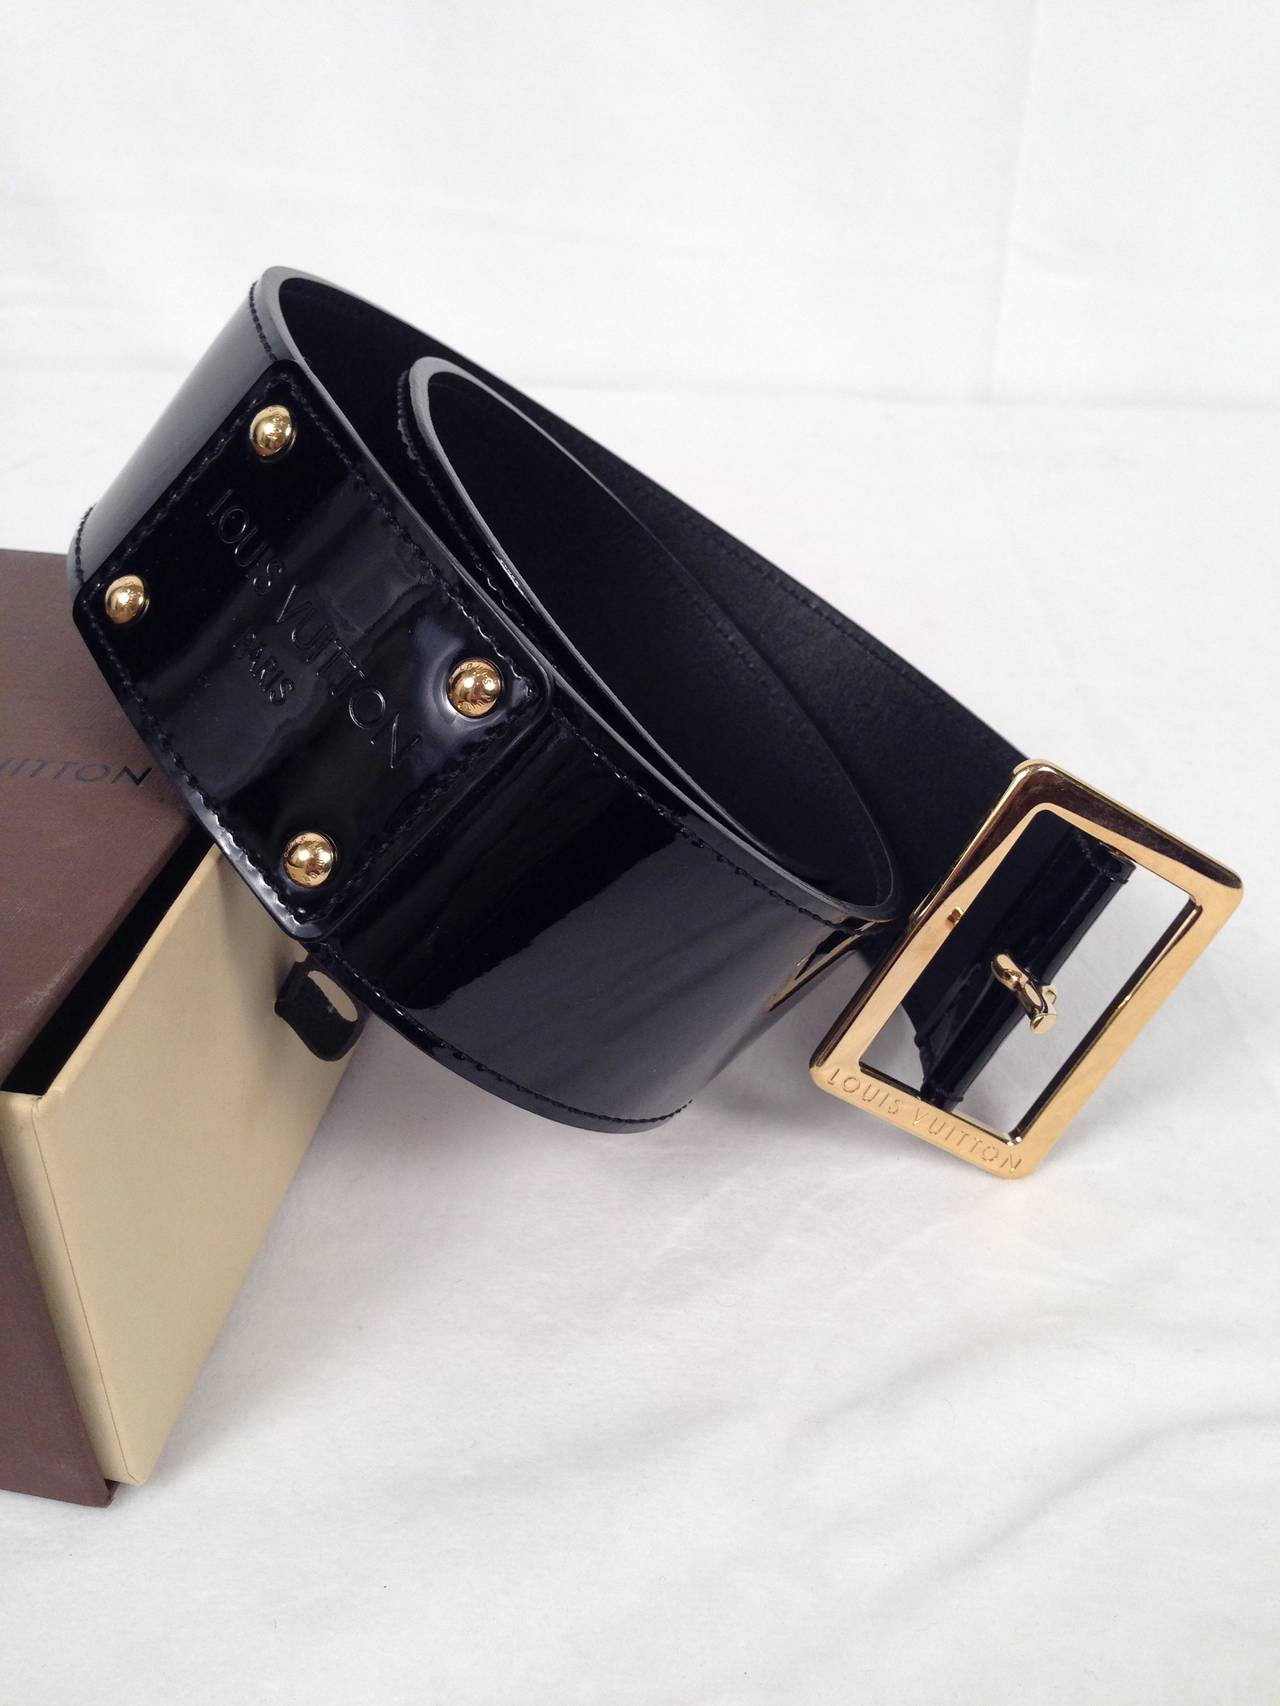 8f21a7ac0d6fd Black but NOT Basic belt from Louis Vuitton! Luxurious patent leather and  gold tone hardware